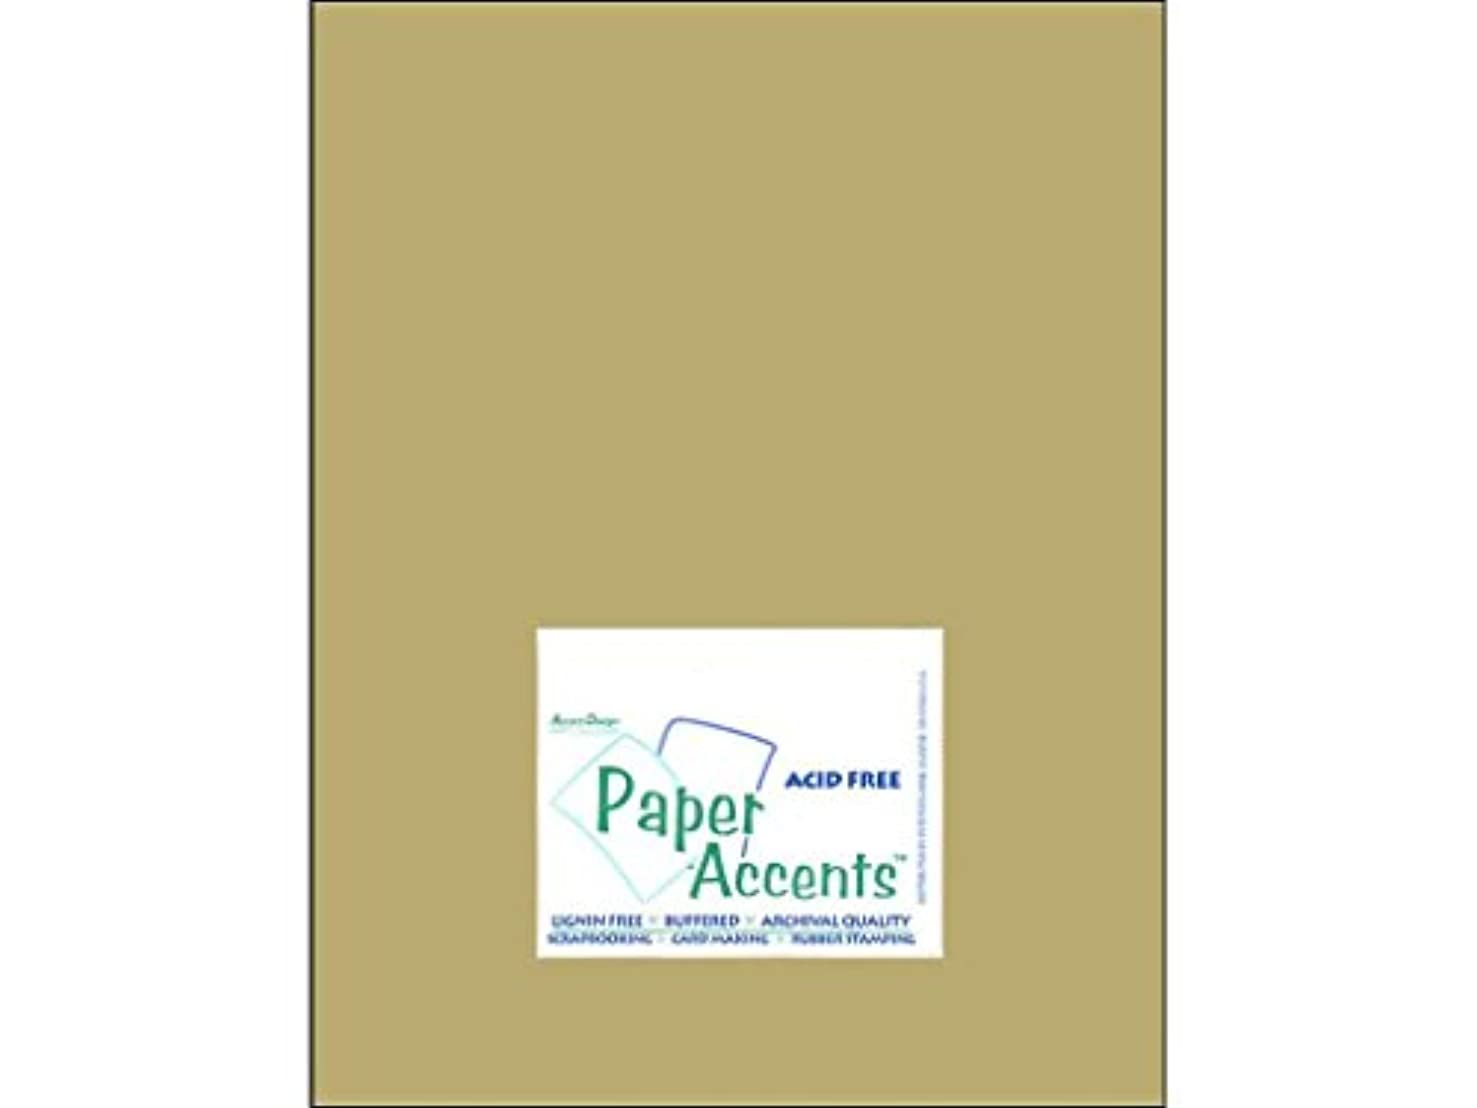 Accent Design Paper Accents Cdstk Muslin 8.5x11 74# Safari